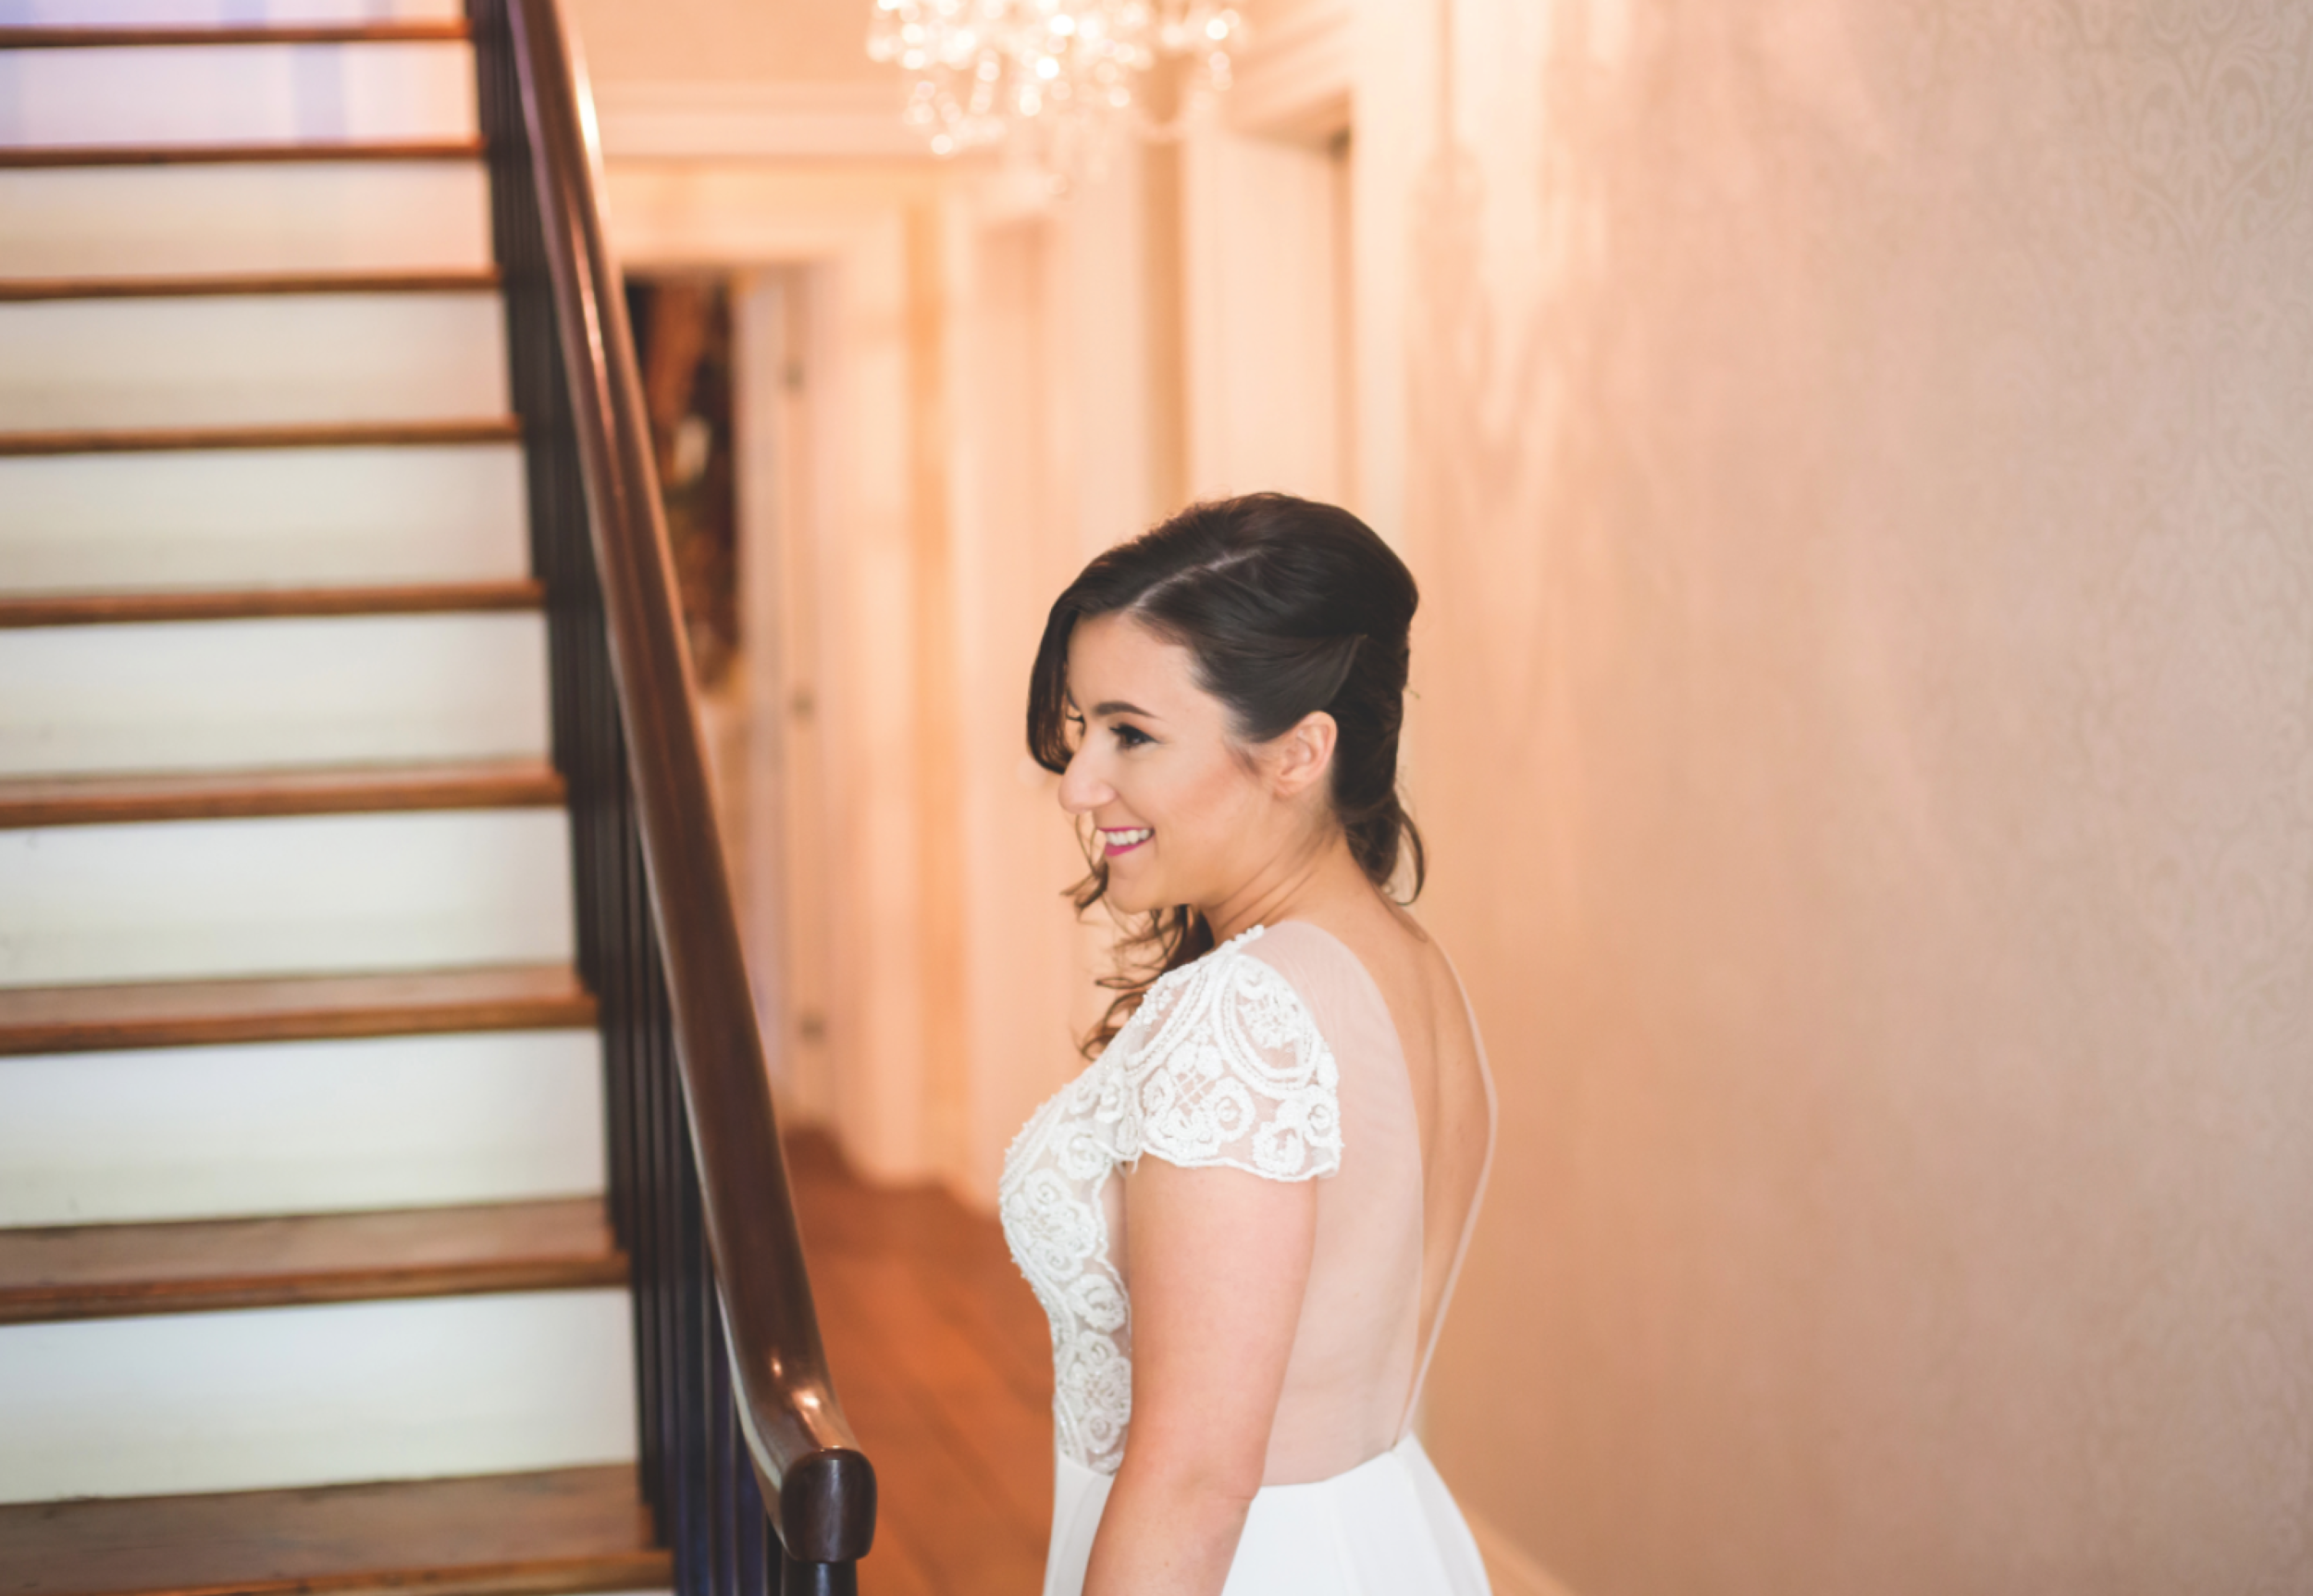 Wedding-Kurtz-Orchard-Market-Niagara-On-The-Lake-Toronto-Hamilton-Burlington-Oakville-Niagara-Wedding-Photographer-Photography-Moments-by-Lauren-Photo-Image-11.png